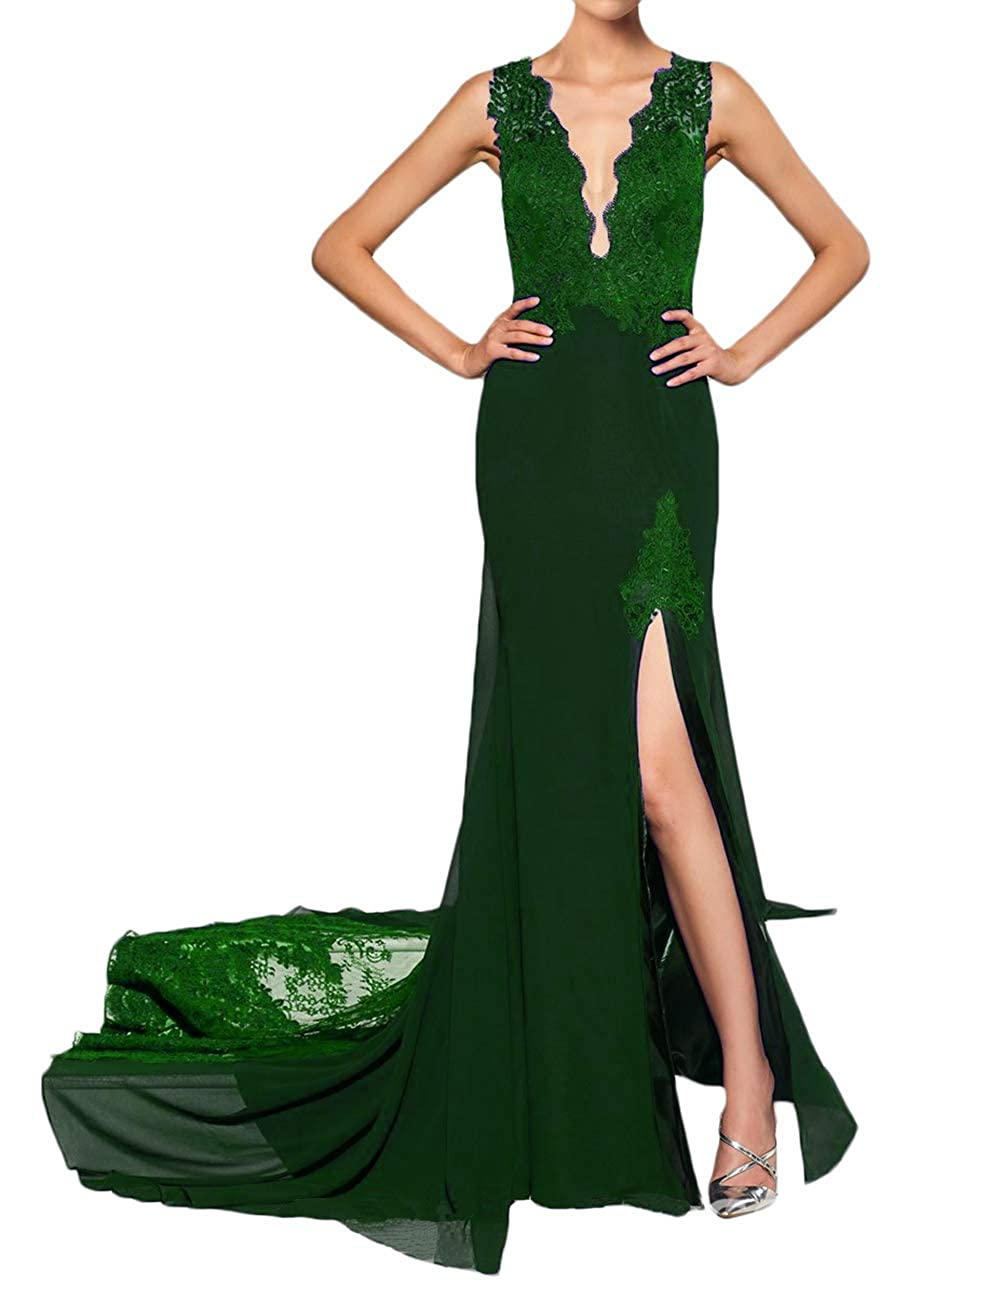 Dark Green alilith.Z Sexy Plunging V Neck Prom Dresses 2019 Mermaid Appliques Lace Long Formal Evening Dresses for Women with Slit